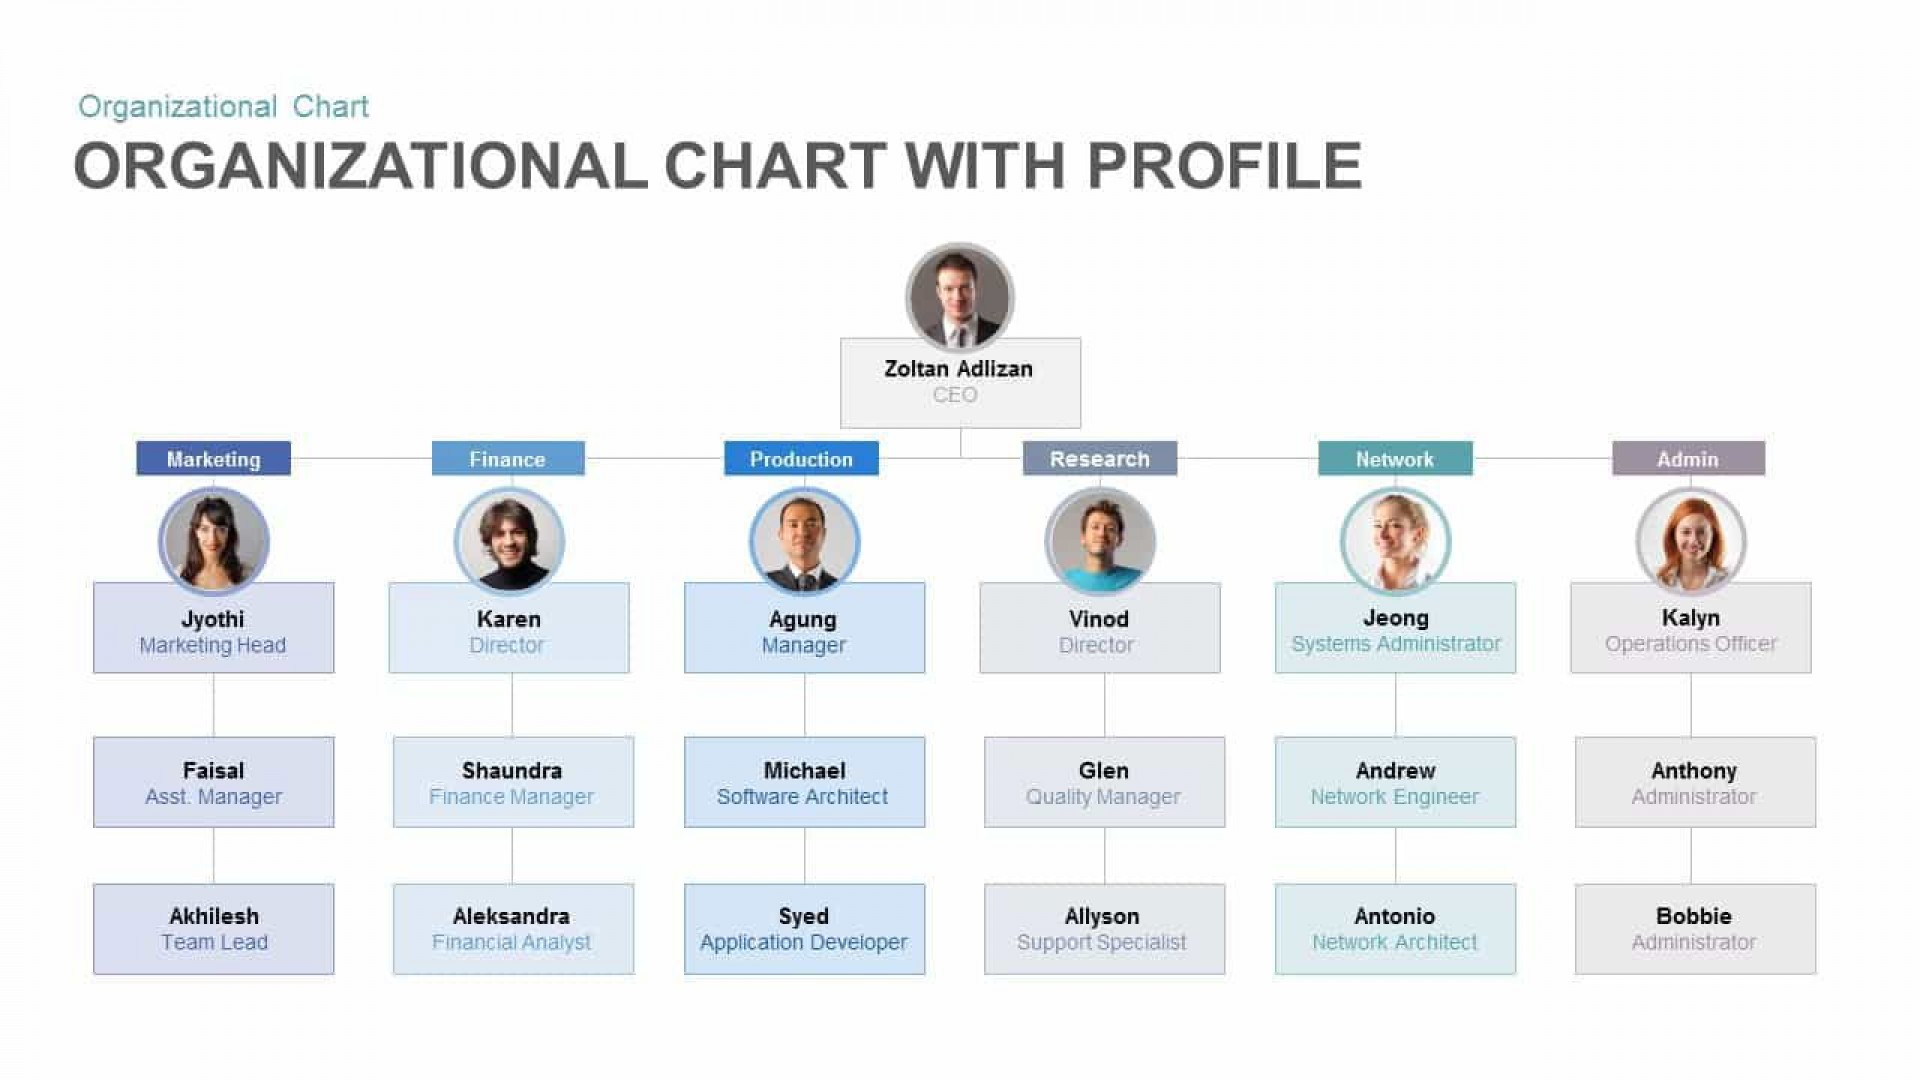 007 Excellent Organizational Chart Template Powerpoint Free Concept  Download 2010 Organization1920